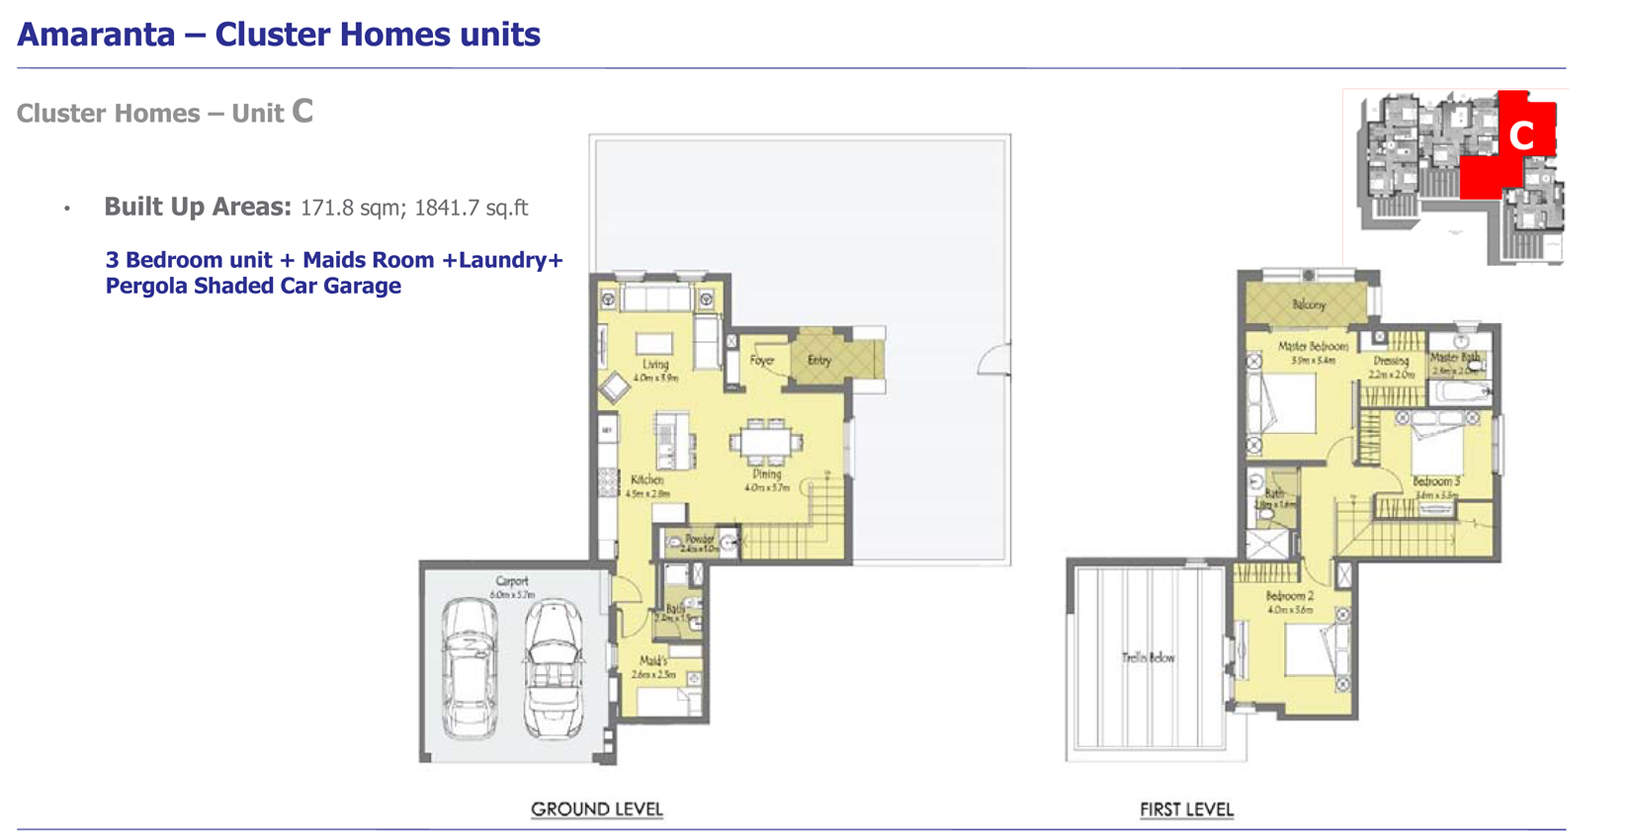 Phase 3 - Cluster Homes – Unit C